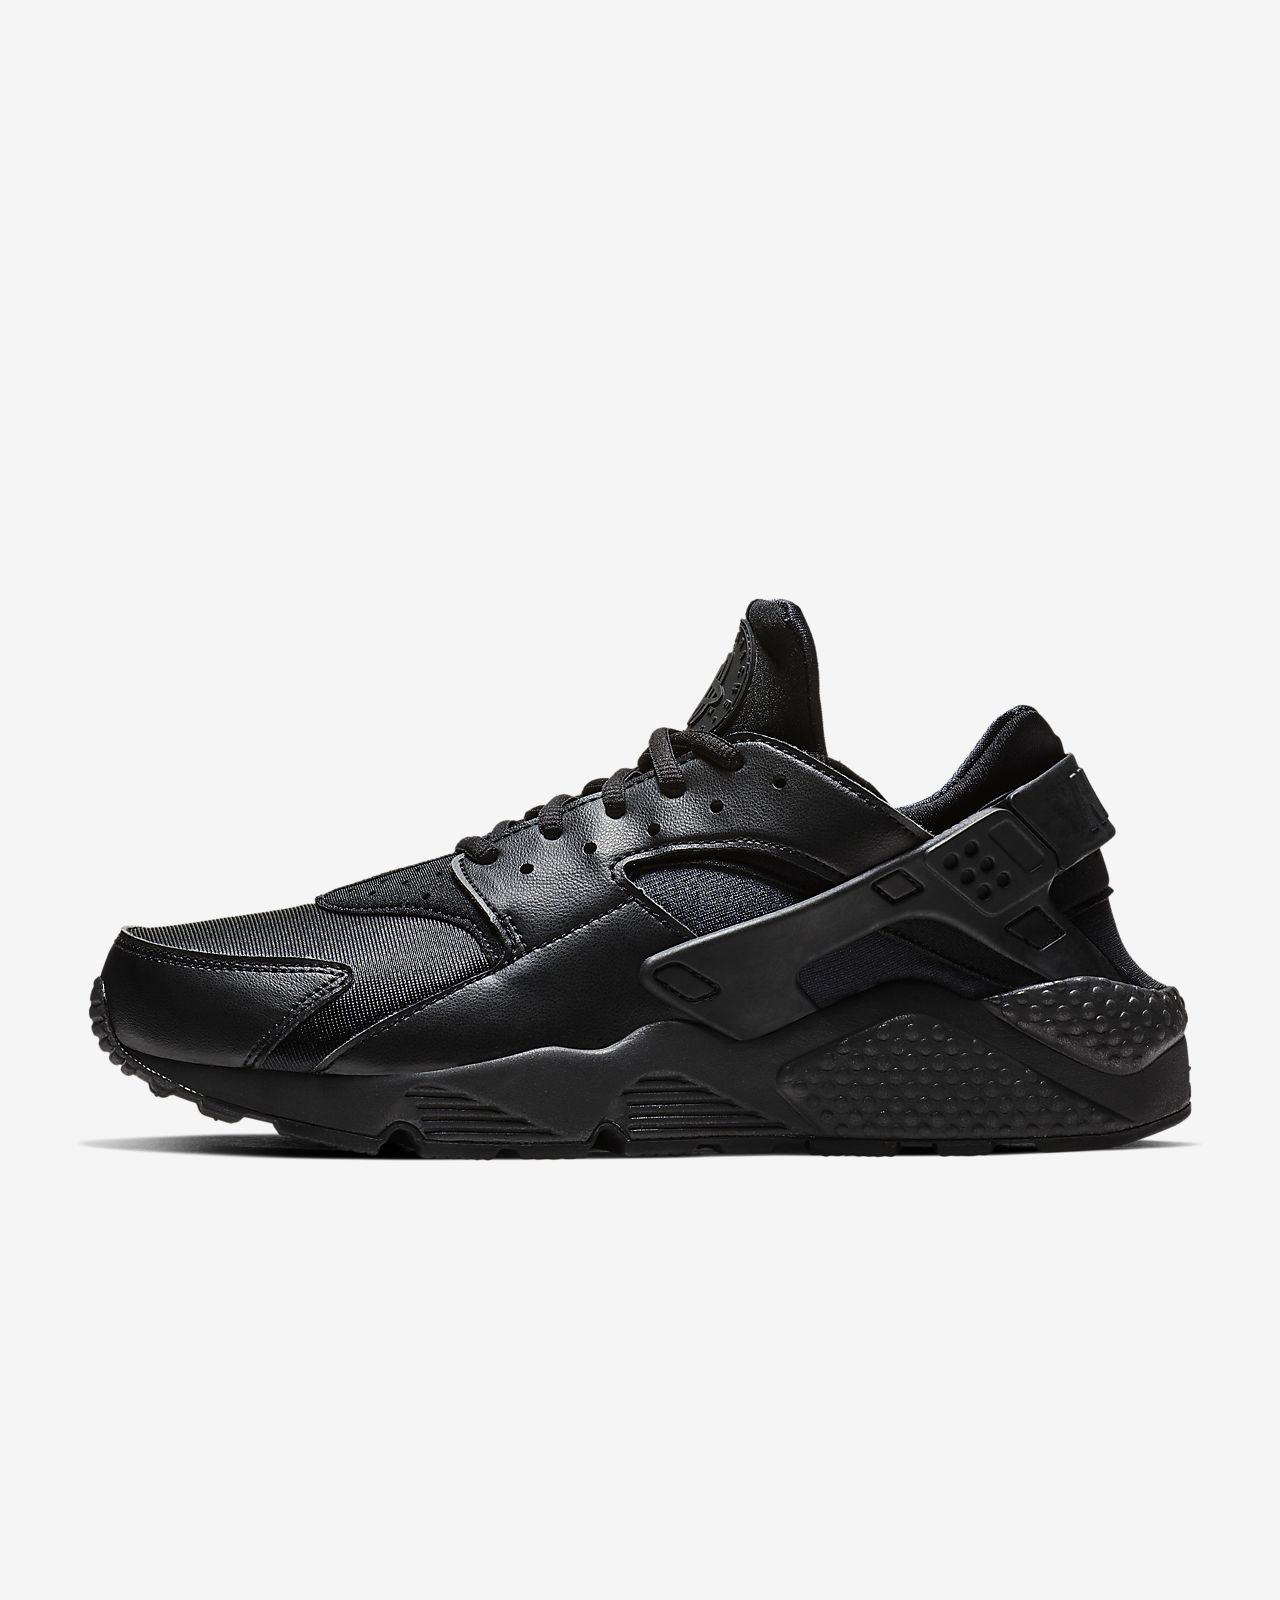 b837ff1f3bc5a Low Resolution Nike Air Huarache Women s Shoe Nike Air Huarache Women s Shoe